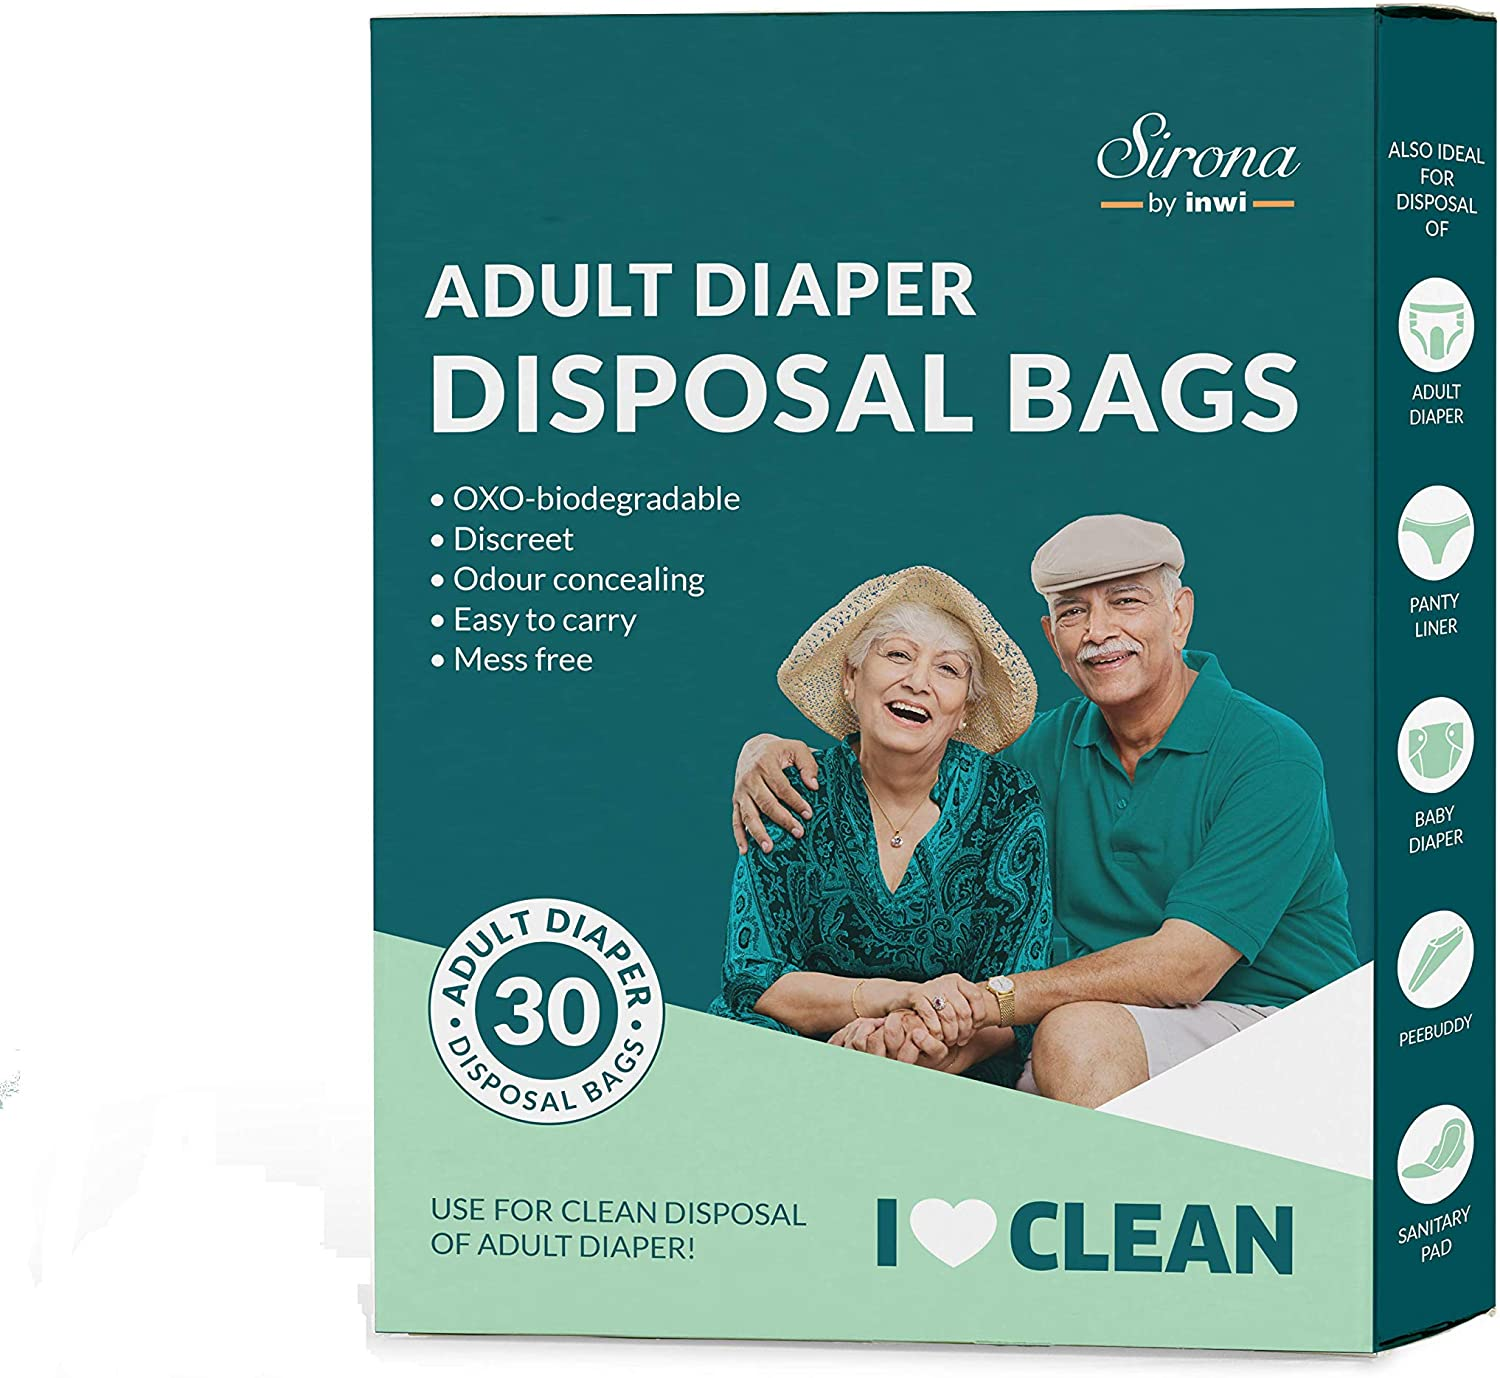 Sirona Premium Adult Diaper Disposable Bags - 30 Bags   Odor Sealing for Diapers, Food Waste, Pet Waste, Sanitary Product Disposal   Durable and Unsce